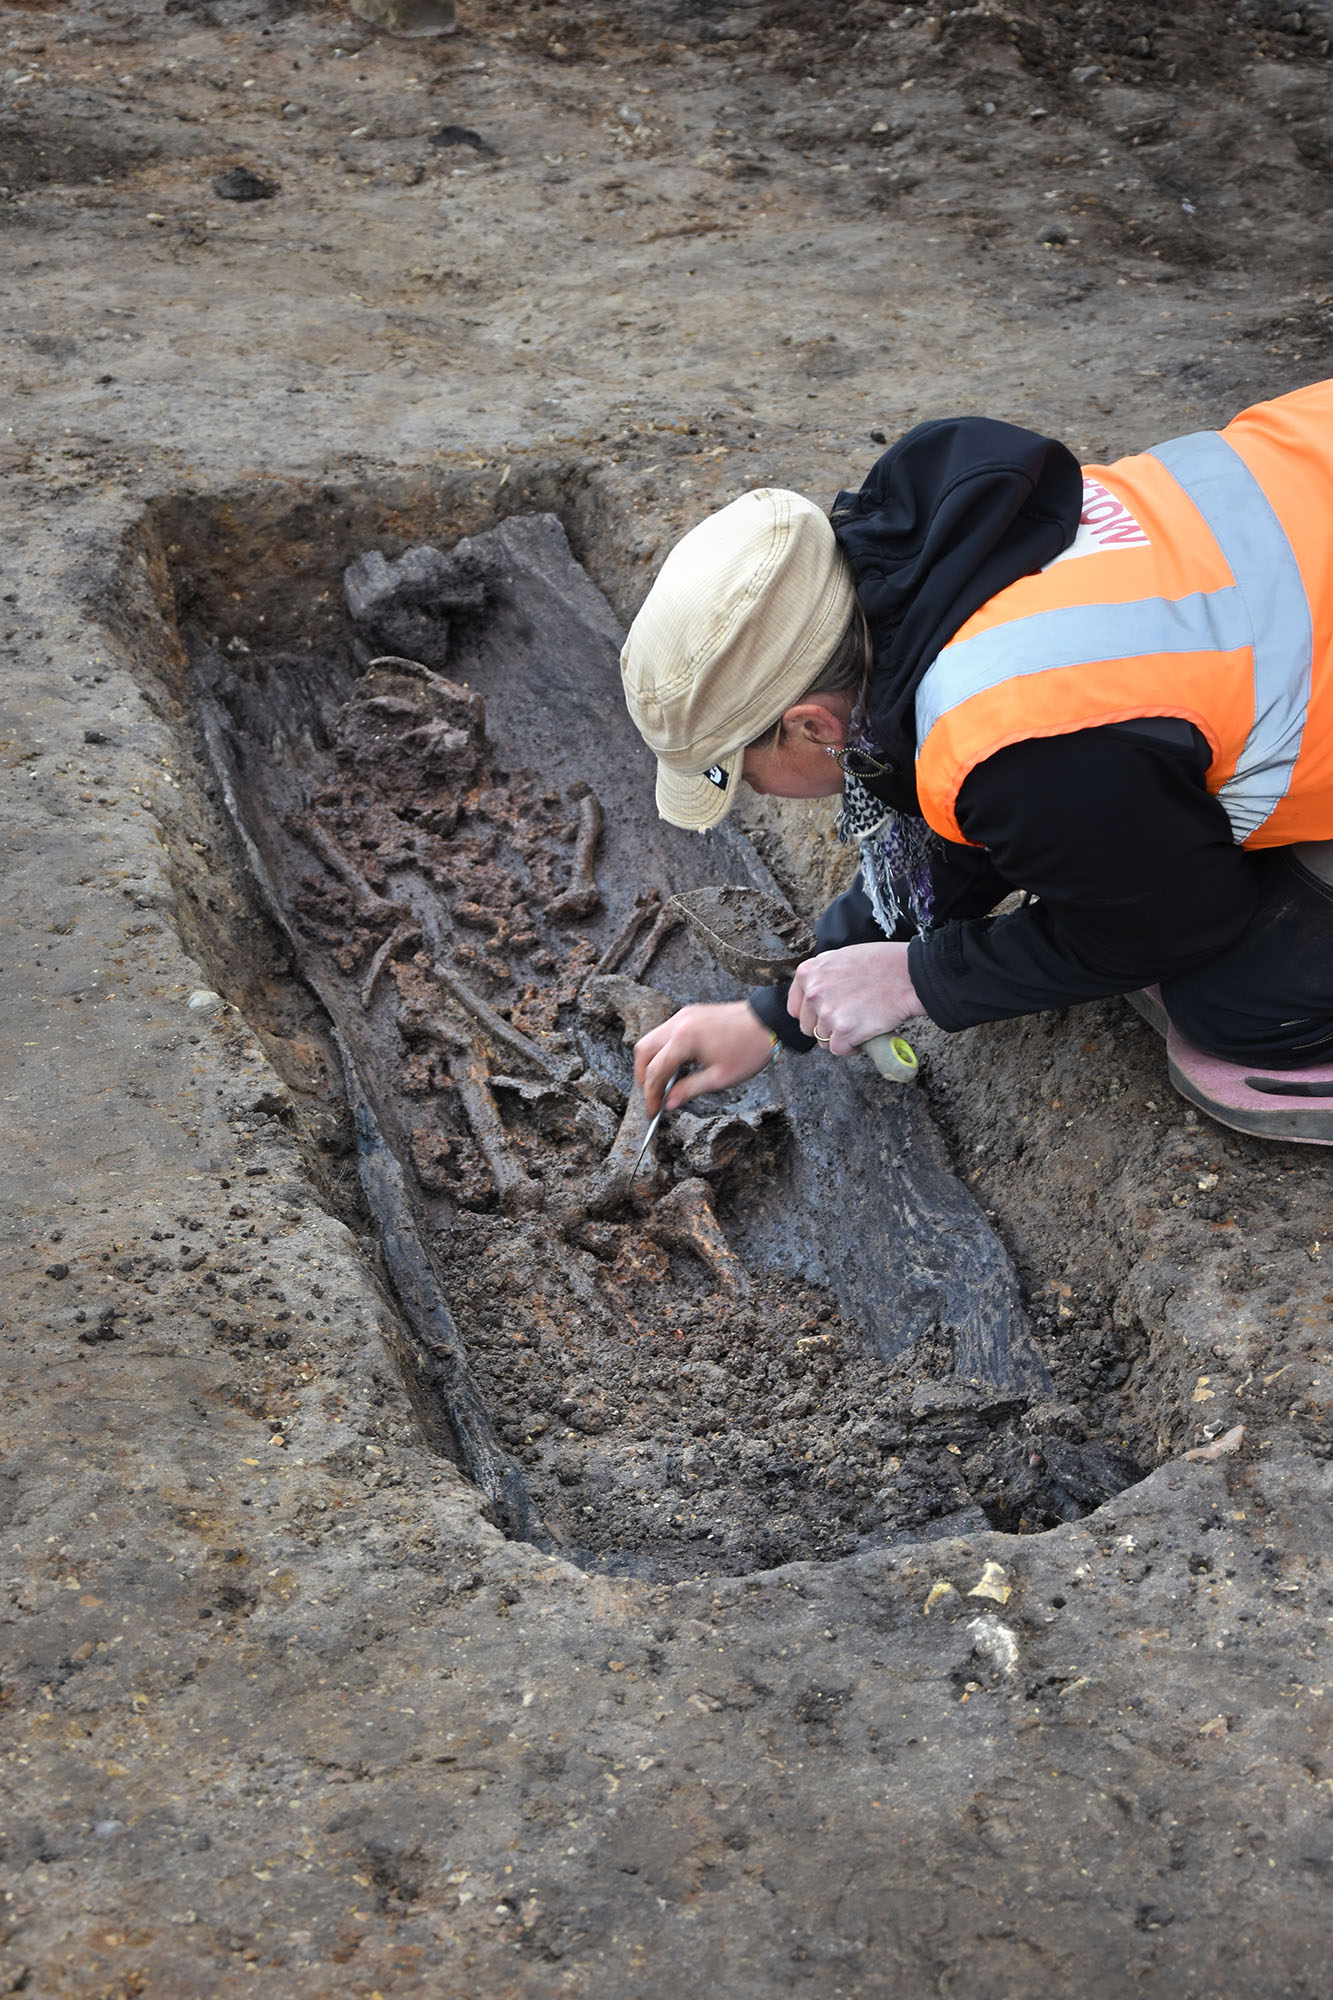 MOLA Archaeologist excavates human remains at great Ryburgh (c) MOLA